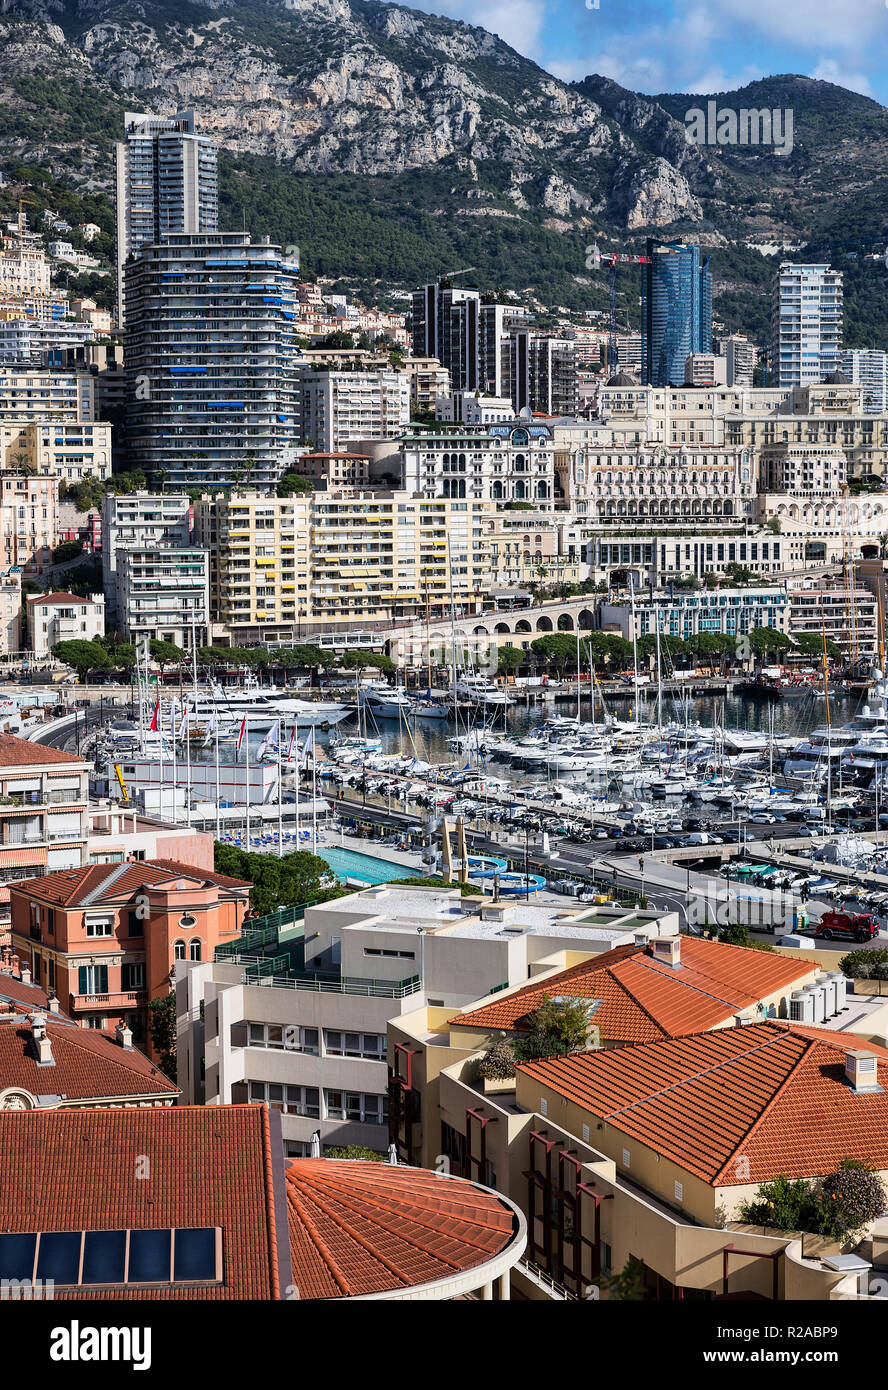 Cityscape and yachts docked in Port Hercule, Monaco. - Stock Image